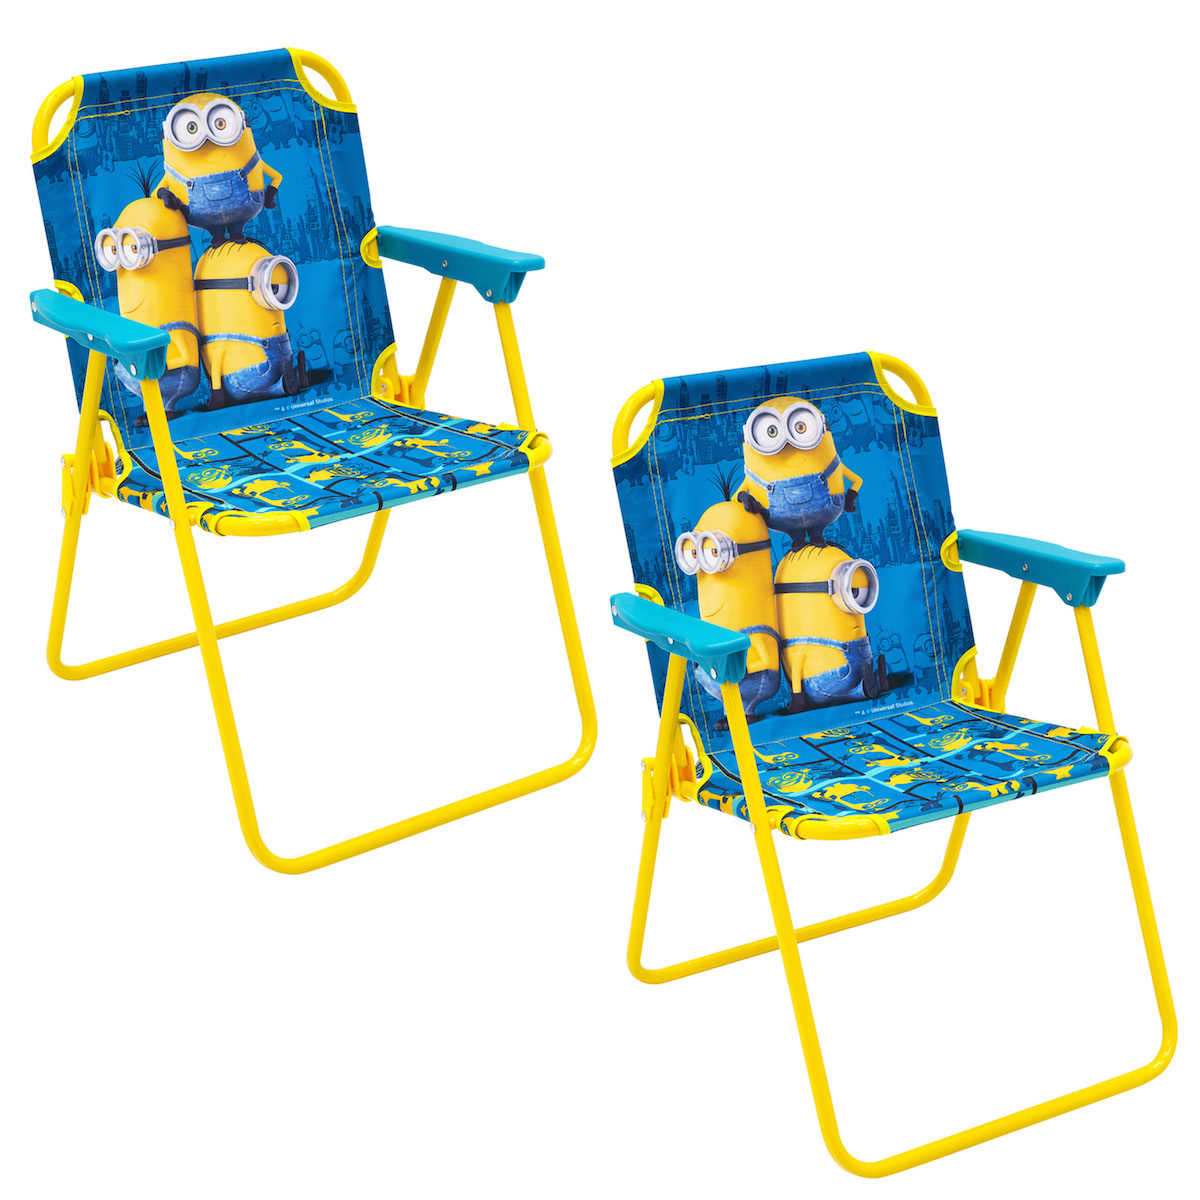 walmart chairs camping nailhead upholstered dining chair set of 2 minions folding patio lounge lawn for kids with safety lock outdoor indoor beach ...